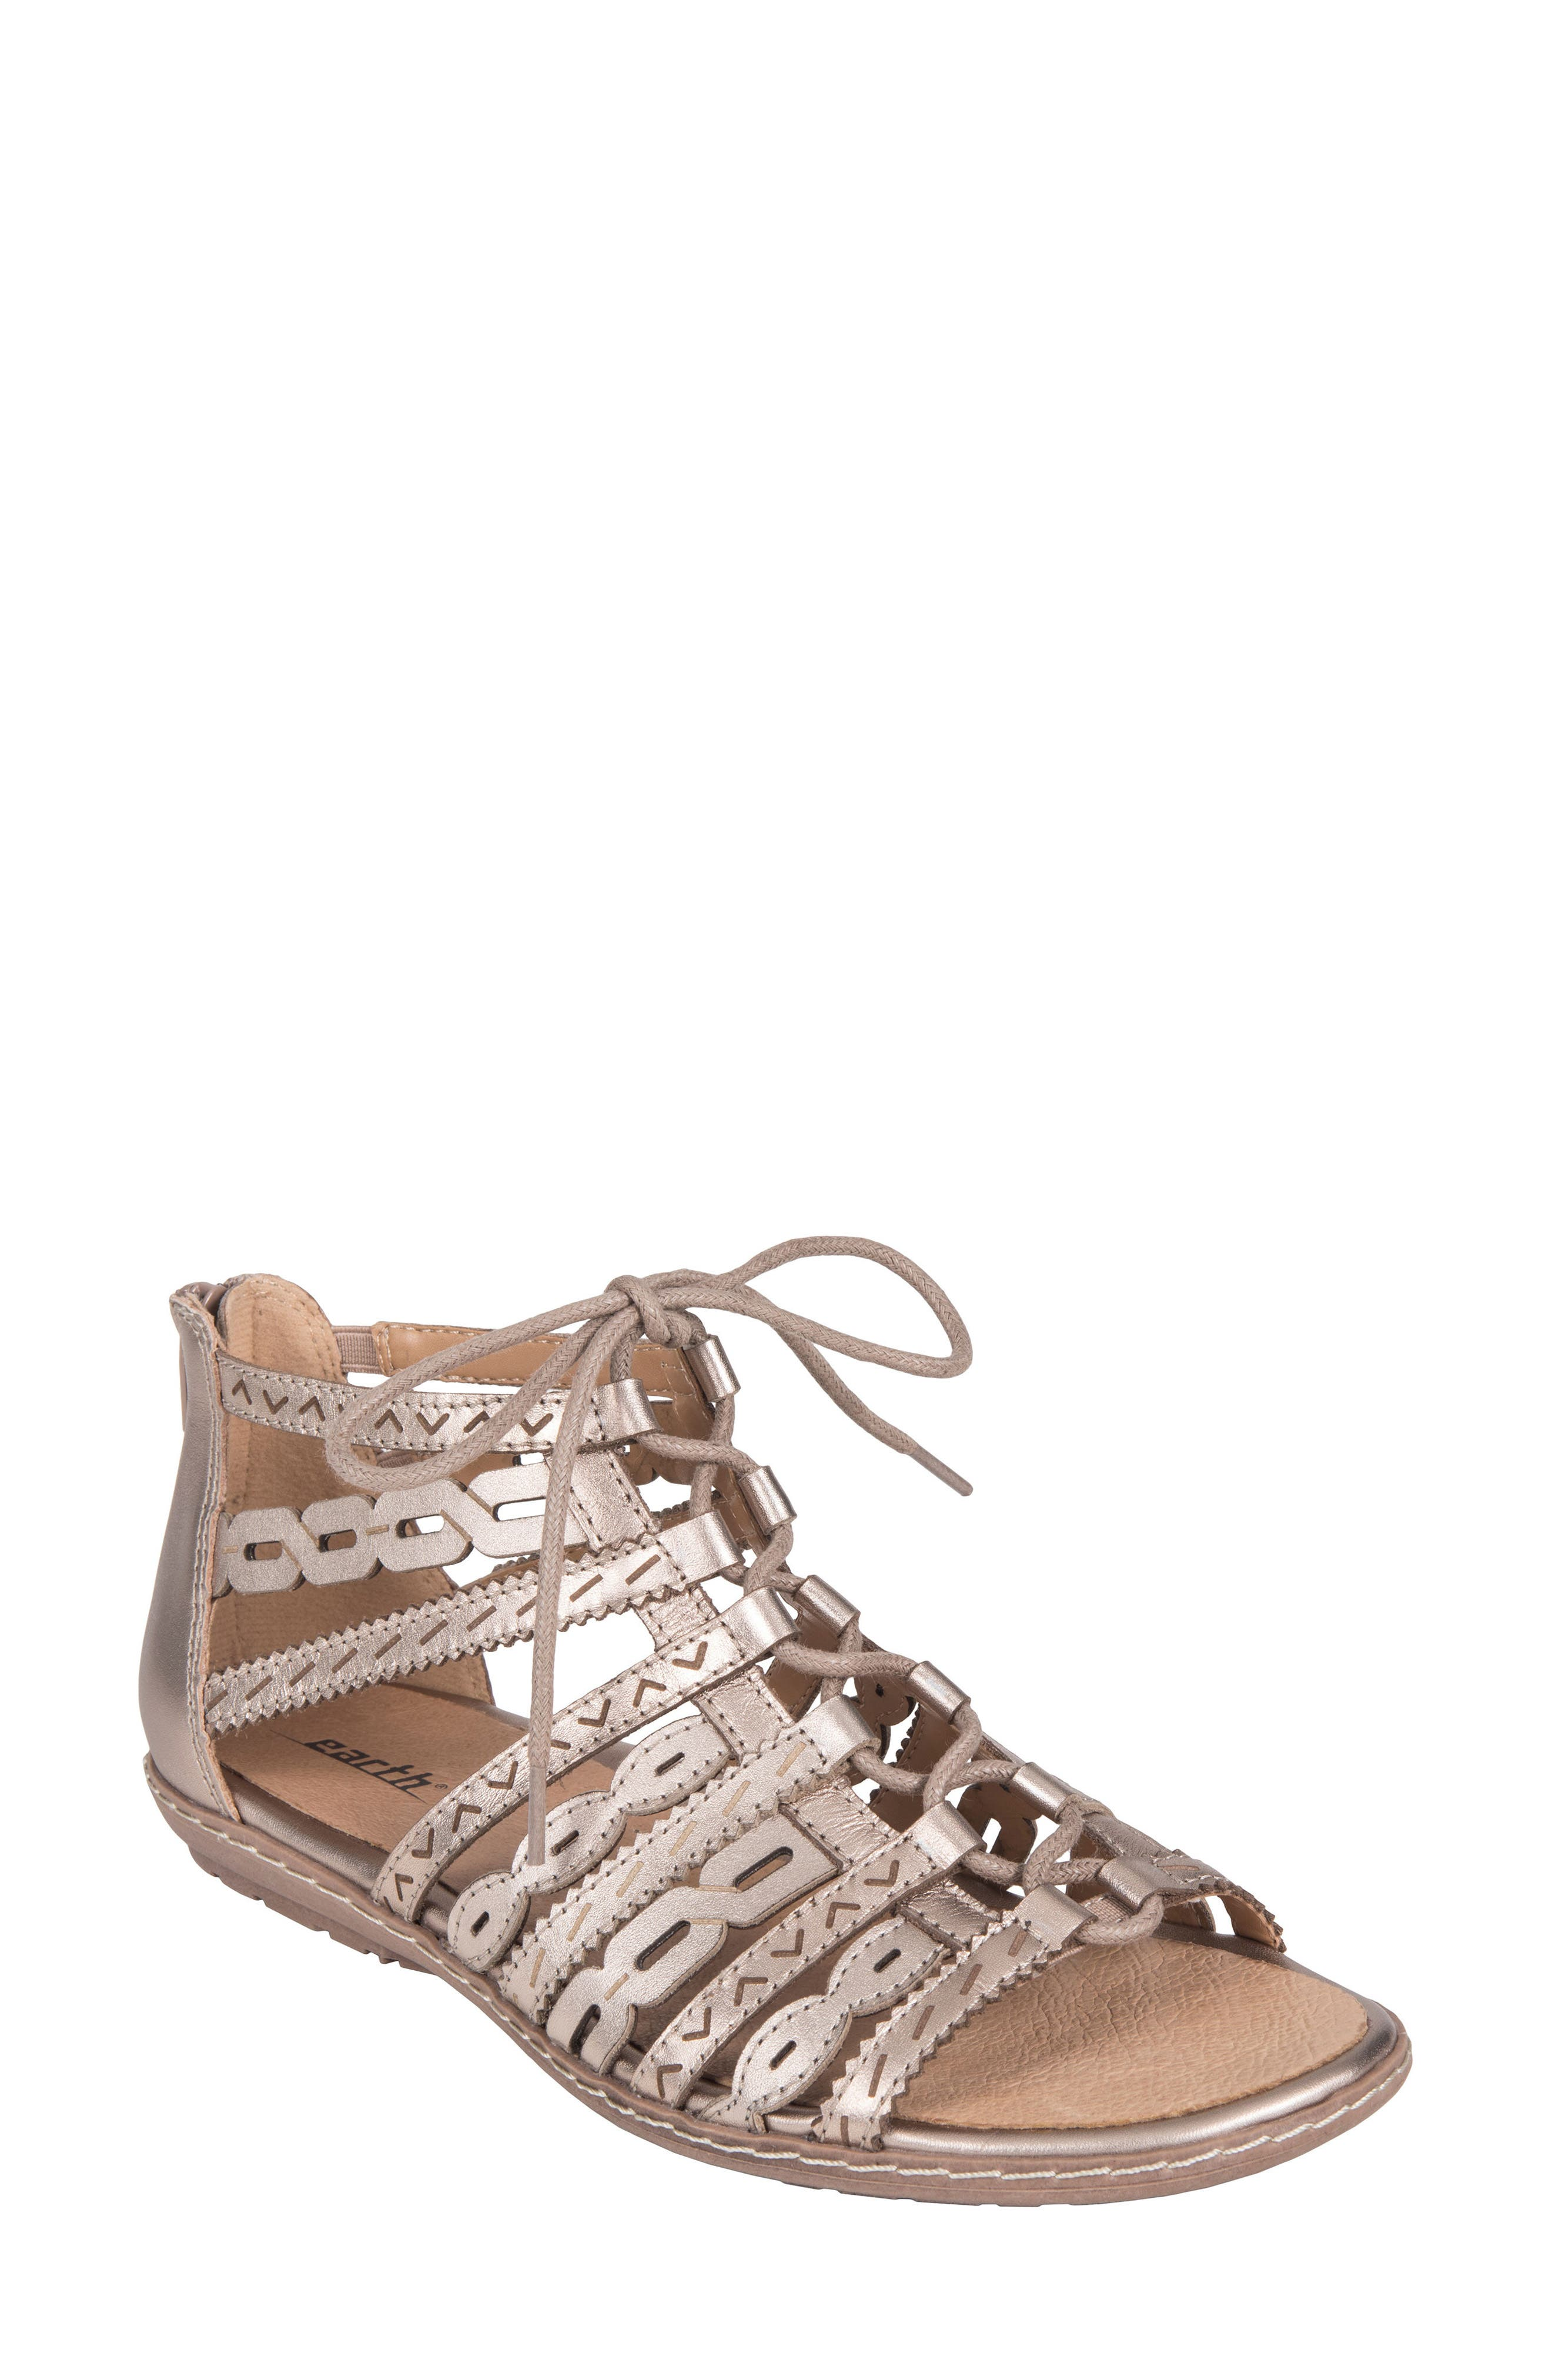 Tidal Mid Top Ghillie Sandal,                         Main,                         color, TITANIUM LEATHER